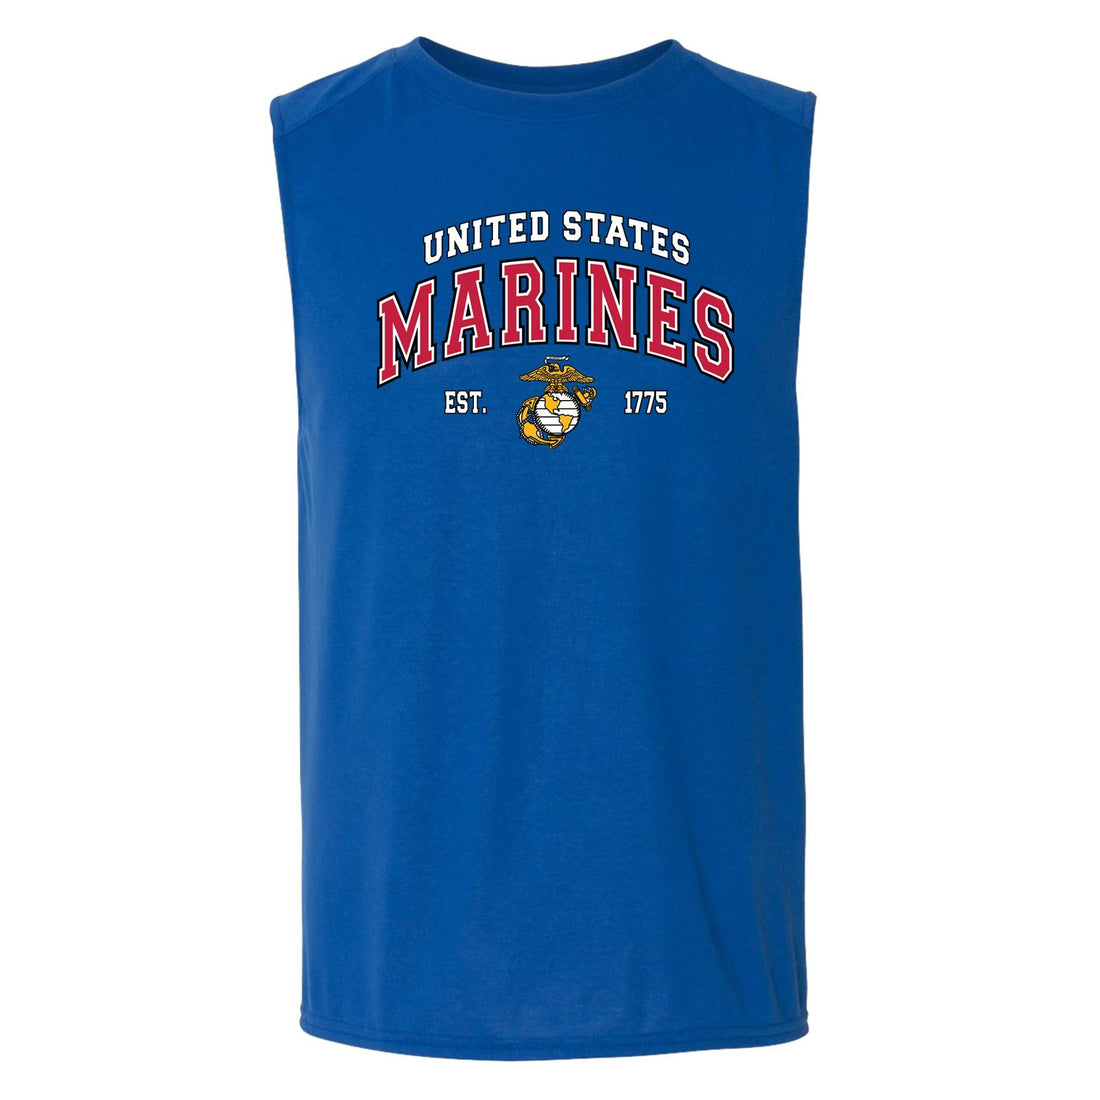 COMBAT CHARGED DRI-FIT PERFORMANCE POLY US MARINES SLEEVELESS